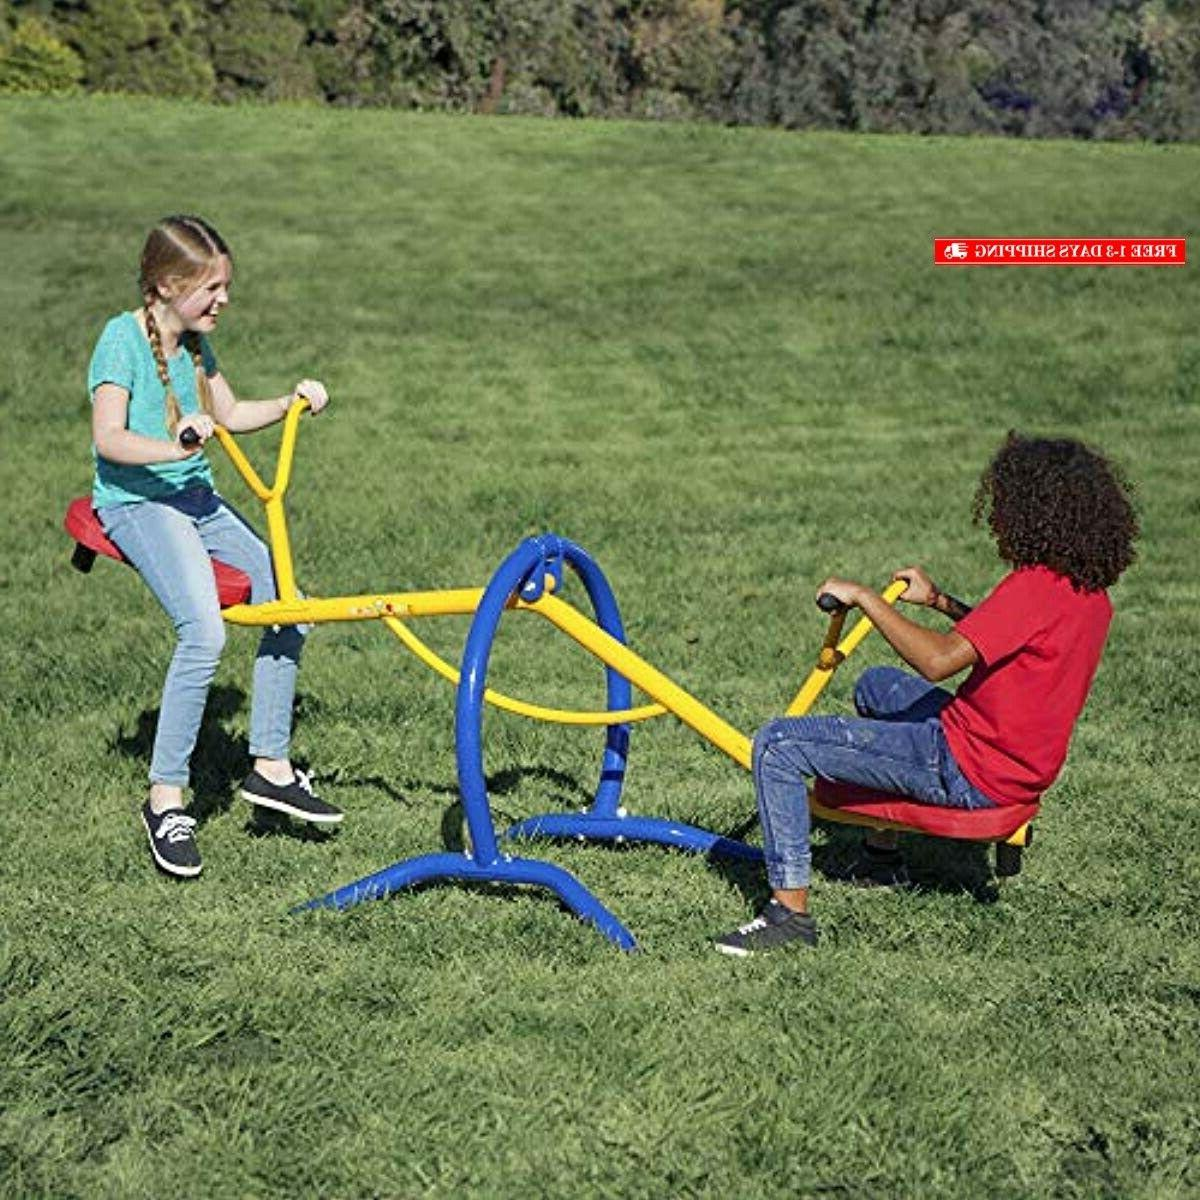 Gym Dandy Teeter-Totter Home Seesaw Playground